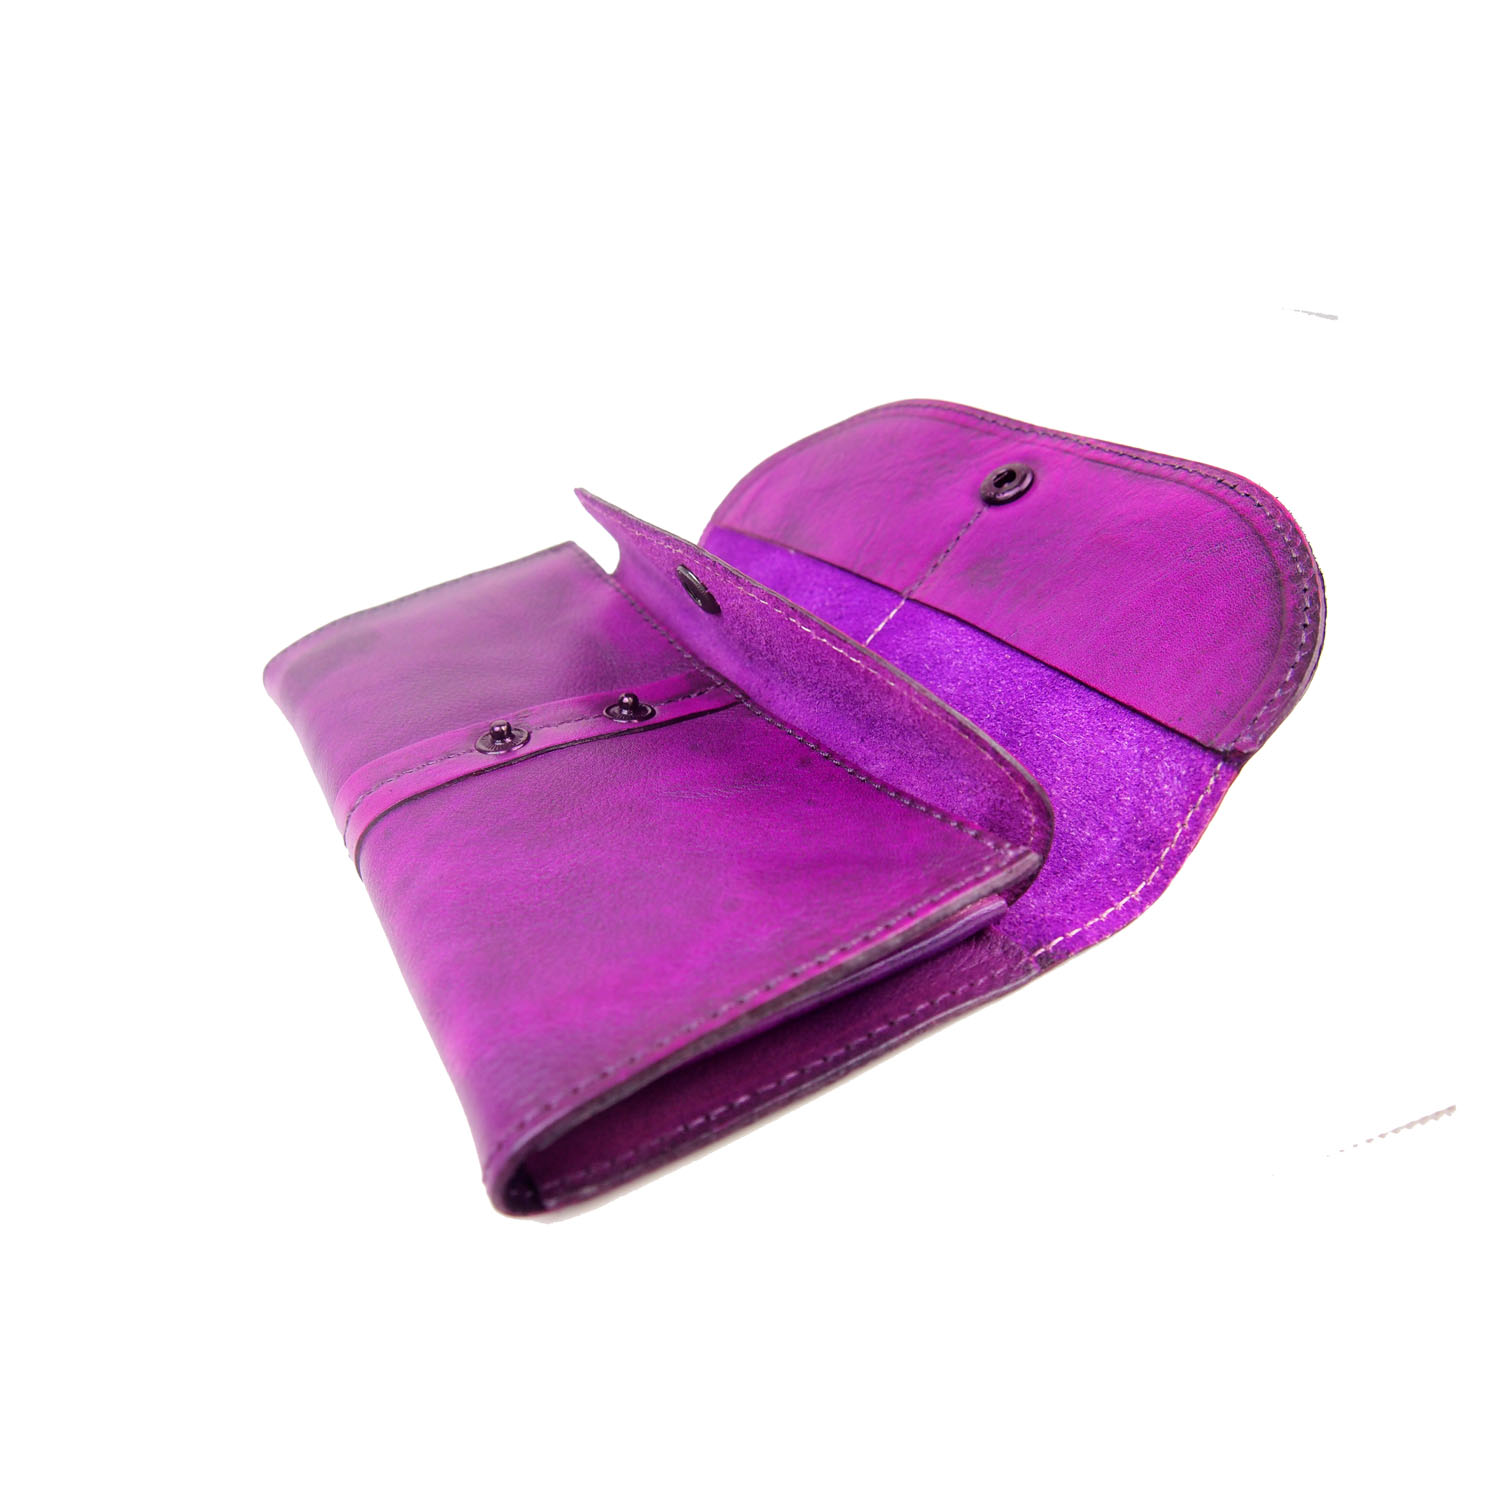 Butterfield Lara Wallet Angled View